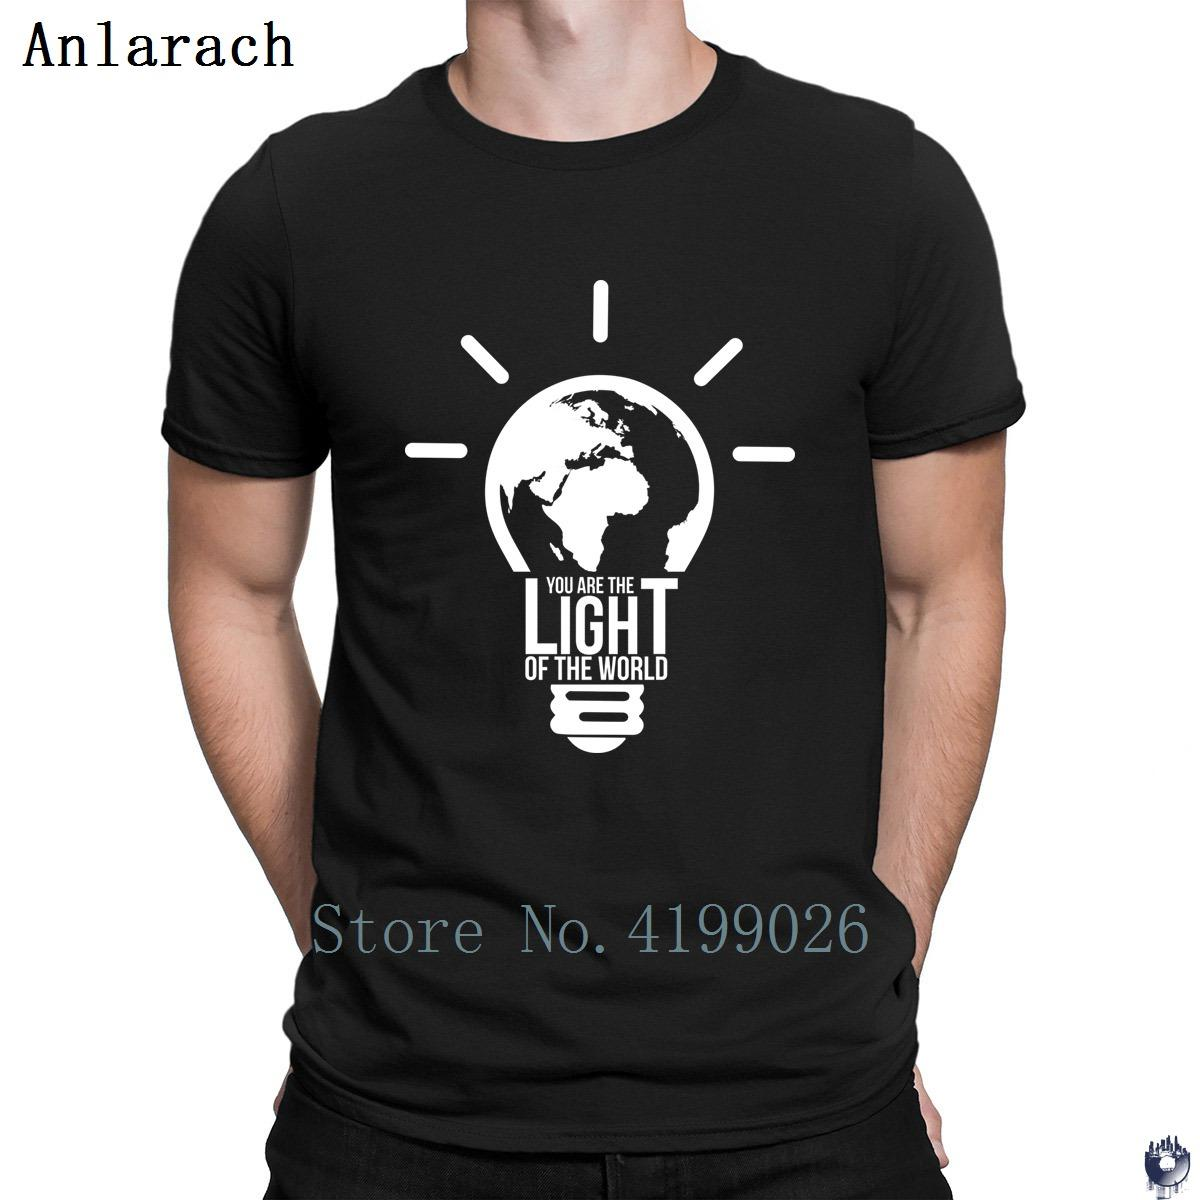 45e2d552 You are the light of the world t-shirts Great Tee tops Fit Leisure men's  tshirt 100% cotton Custom Costume Anlarach 2018